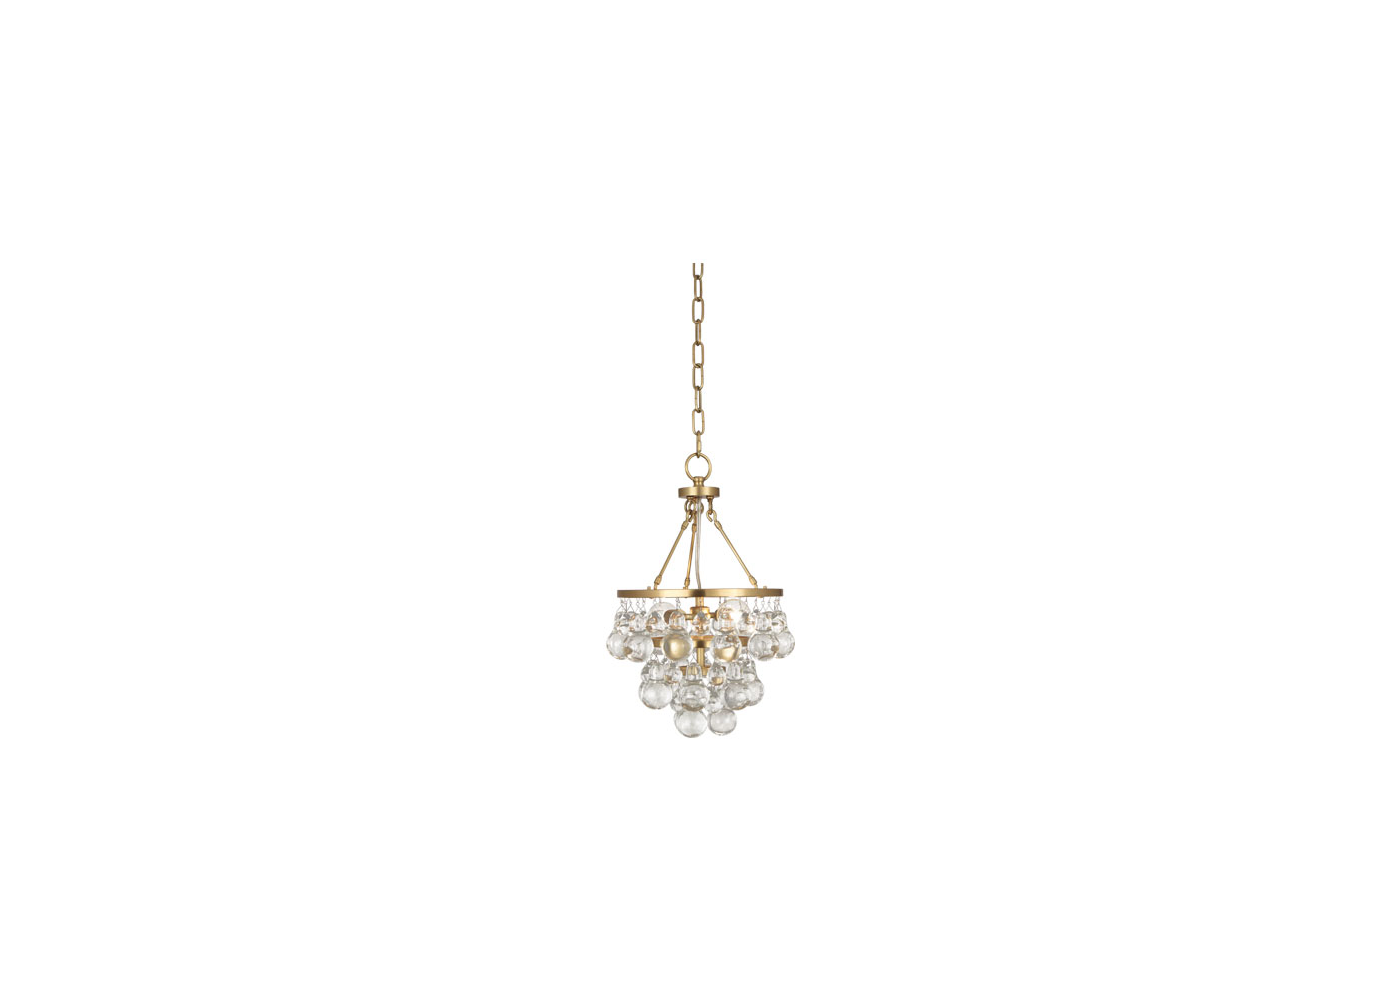 kovacs hover htm small light chandelier pontil zoom productdetail honey to six george gold